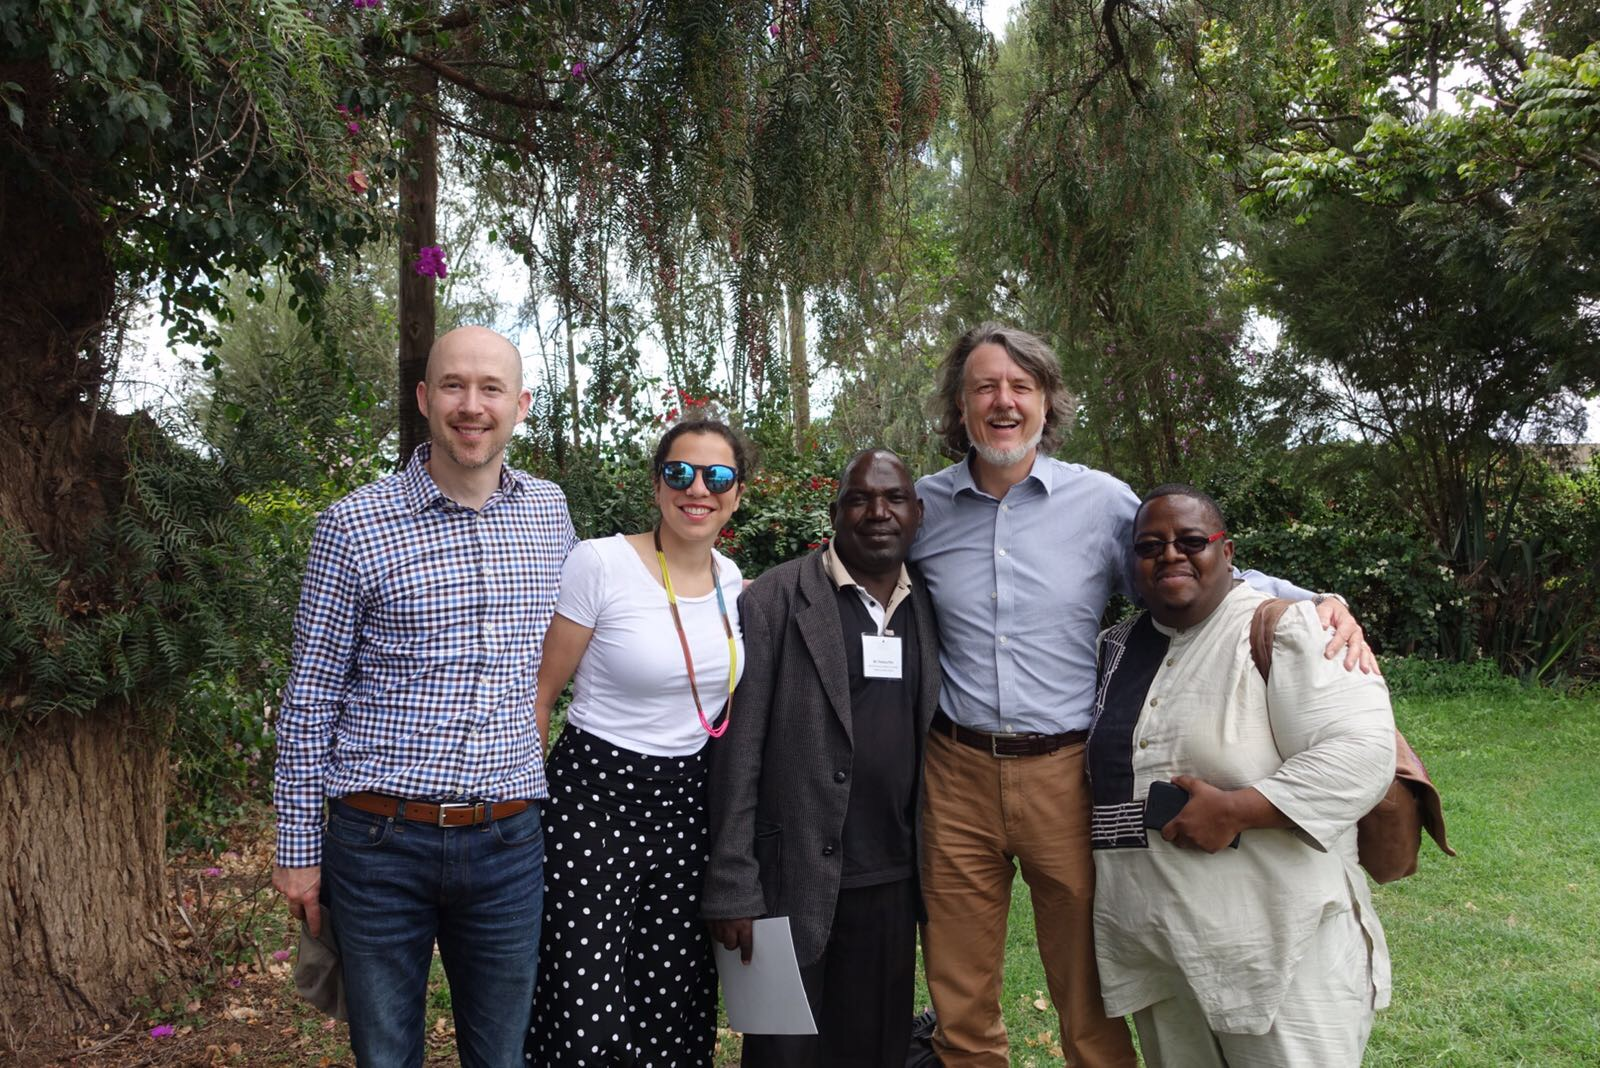 Thomas Kisimbi (far right) led AMP Health team members on a field visit in Kenya to see how the community health system operates firsthand.